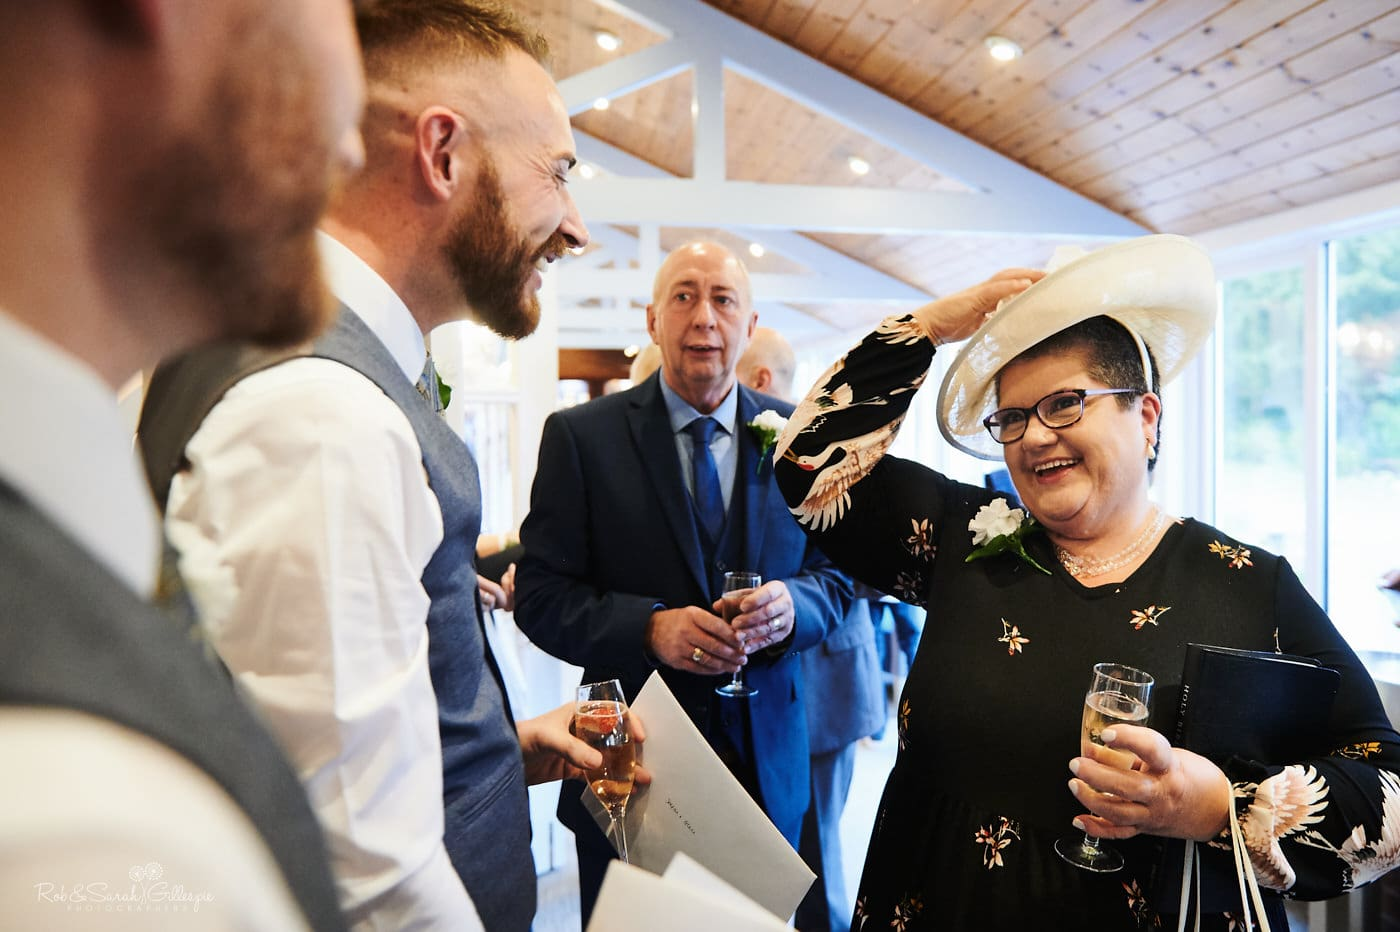 Grooms congratulated by wedding guests